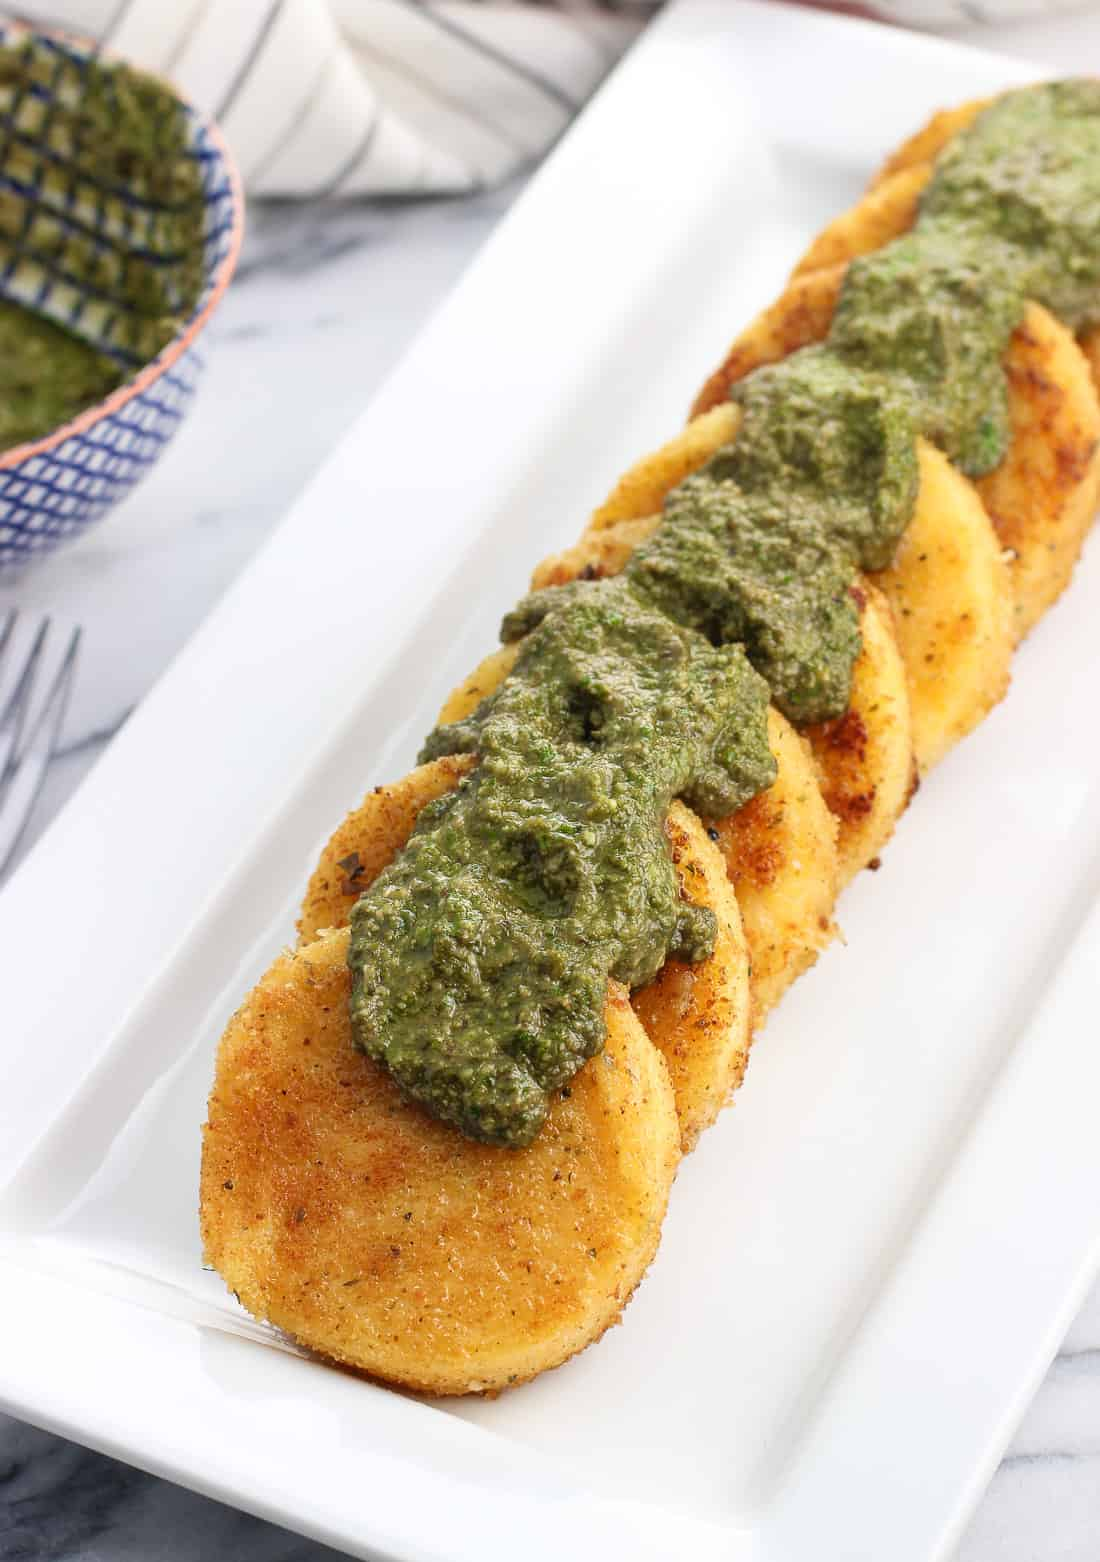 Italian-seasoned breadcrumb and Parmesan crusted polenta slices are quickly pan-fried and topped with basil pesto for a delicious appetizer or side dish recipe.